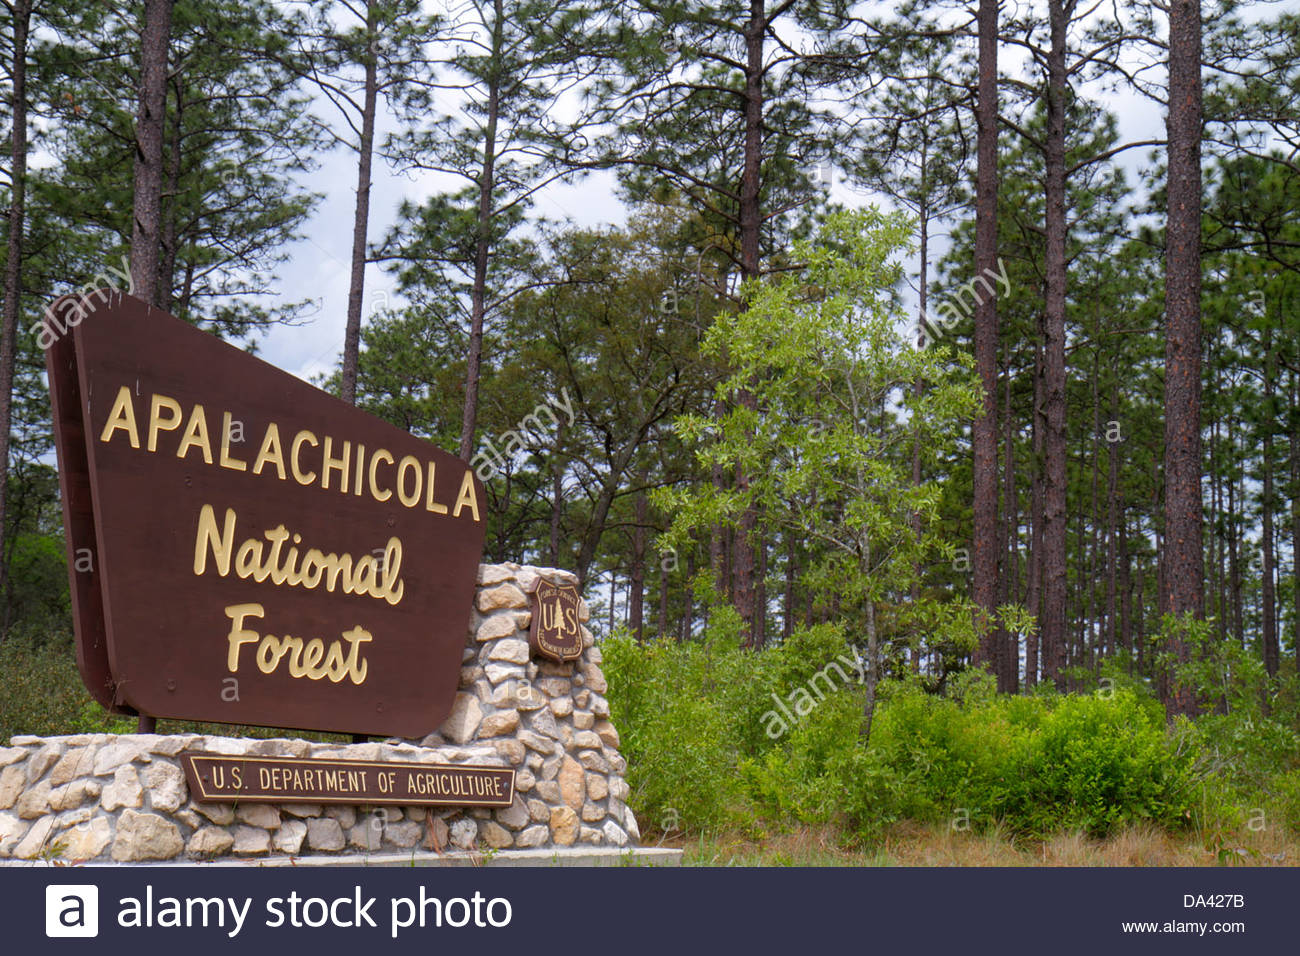 Tallahassee Florida Apalachicola National Forest sign Route 319 - Stock Image